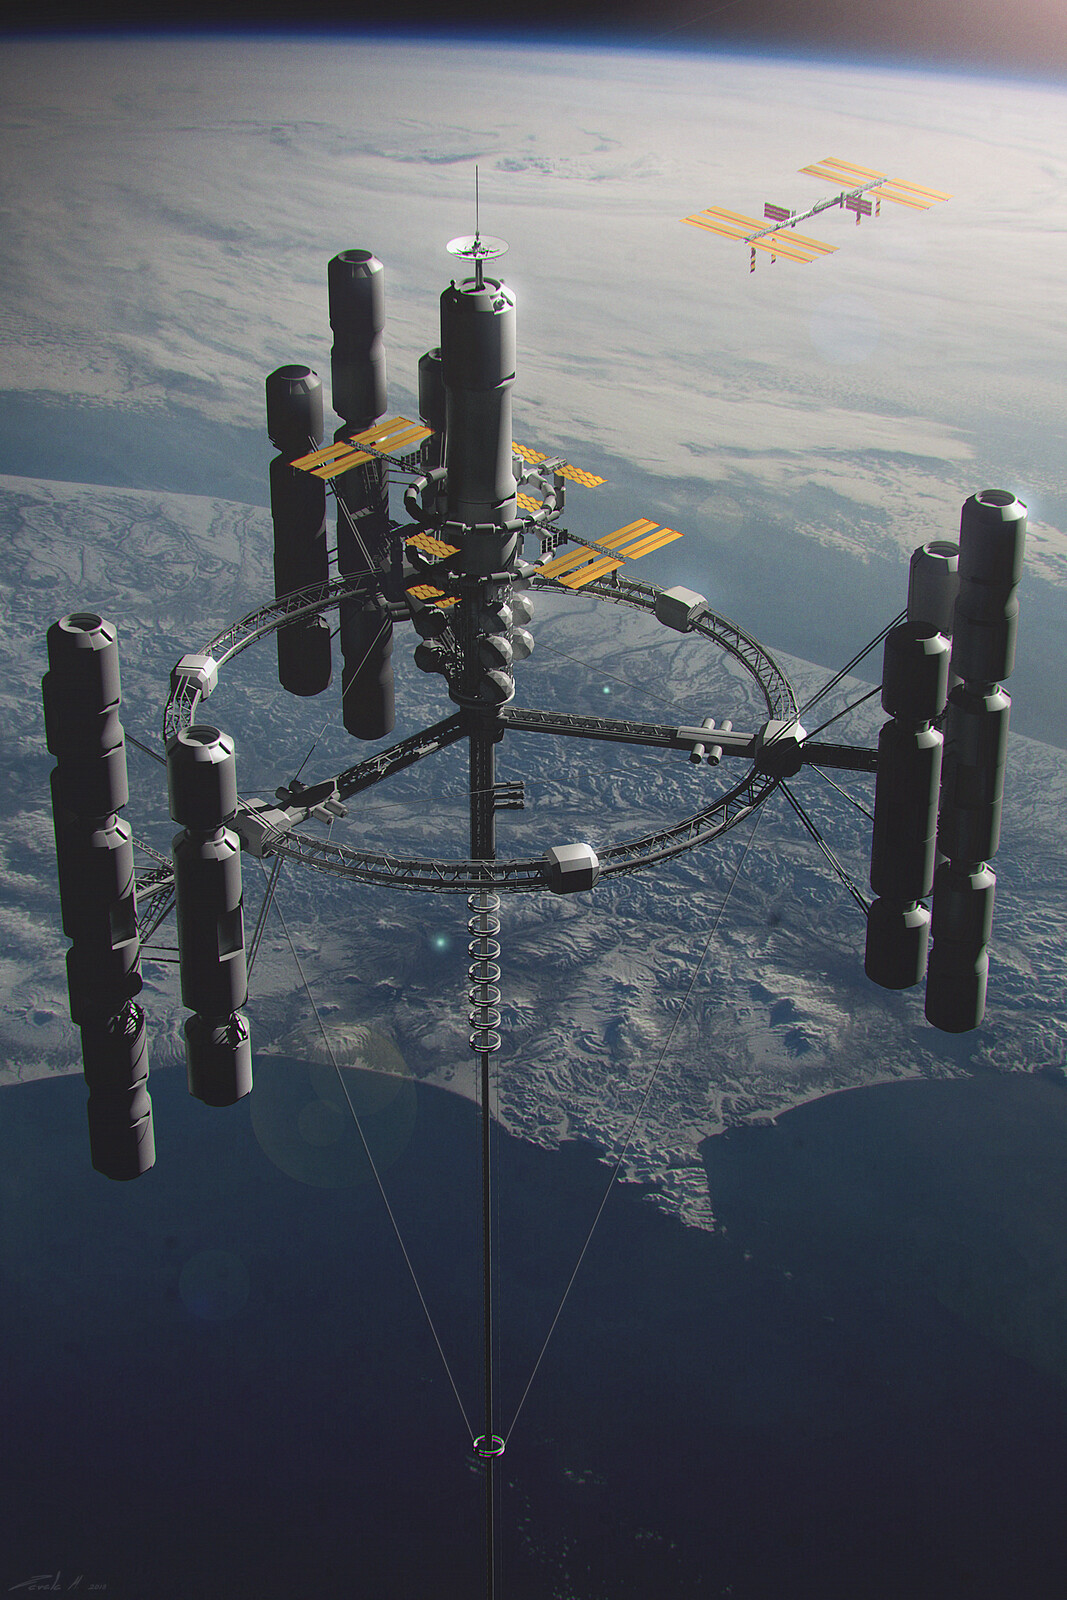 Originally the space elevator was to have a complex station at the top that would also serve as a counterweight.